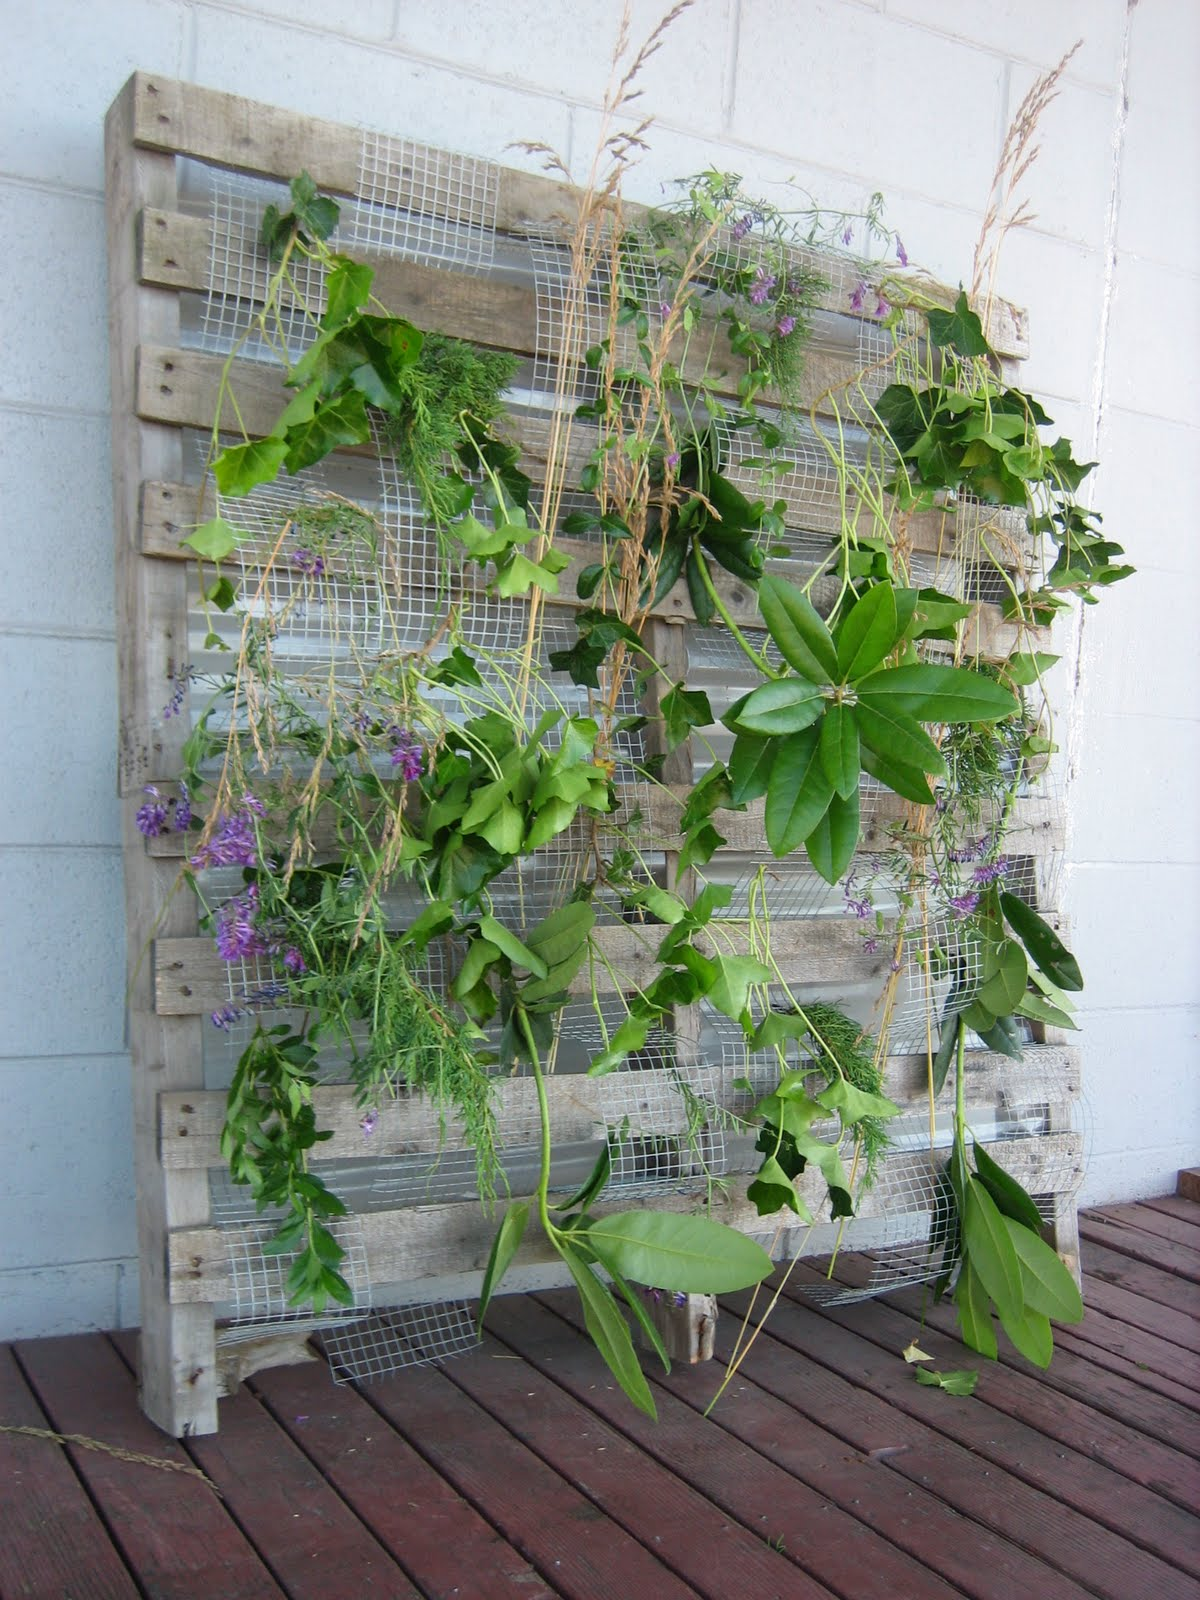 horticultural building systems living wall trellis molly mcgowan. Black Bedroom Furniture Sets. Home Design Ideas